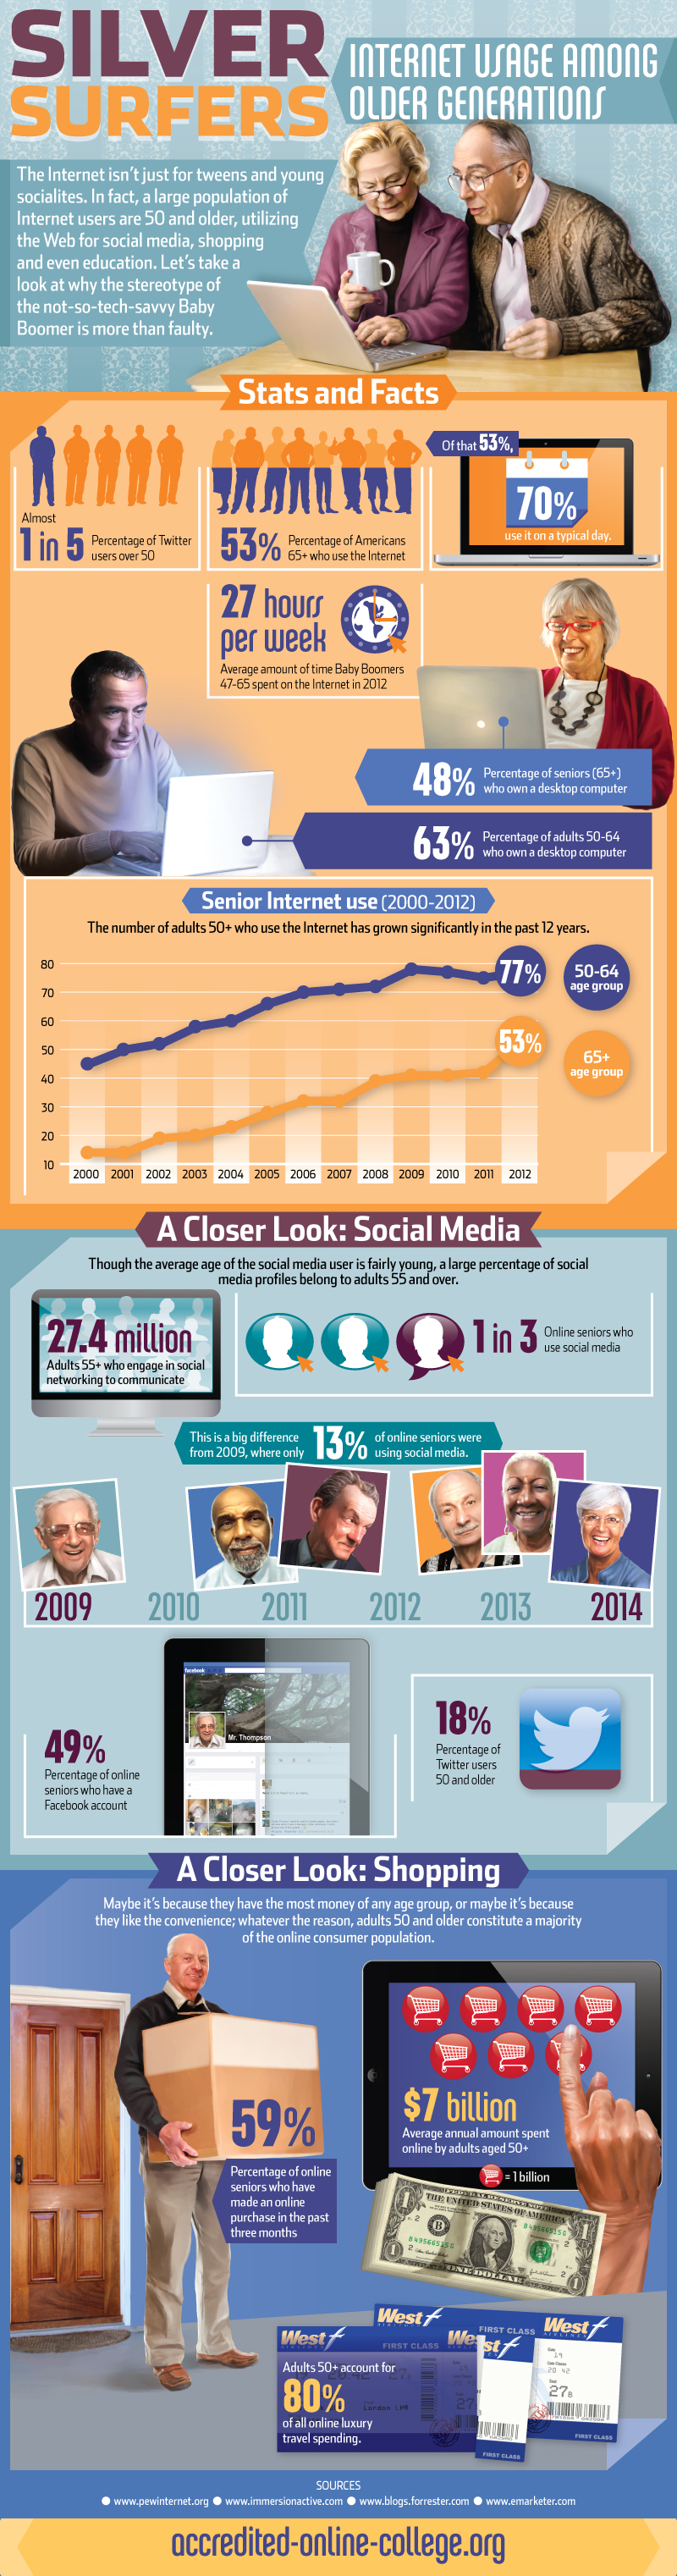 Baby Boomer utilization of Social Media stats and information